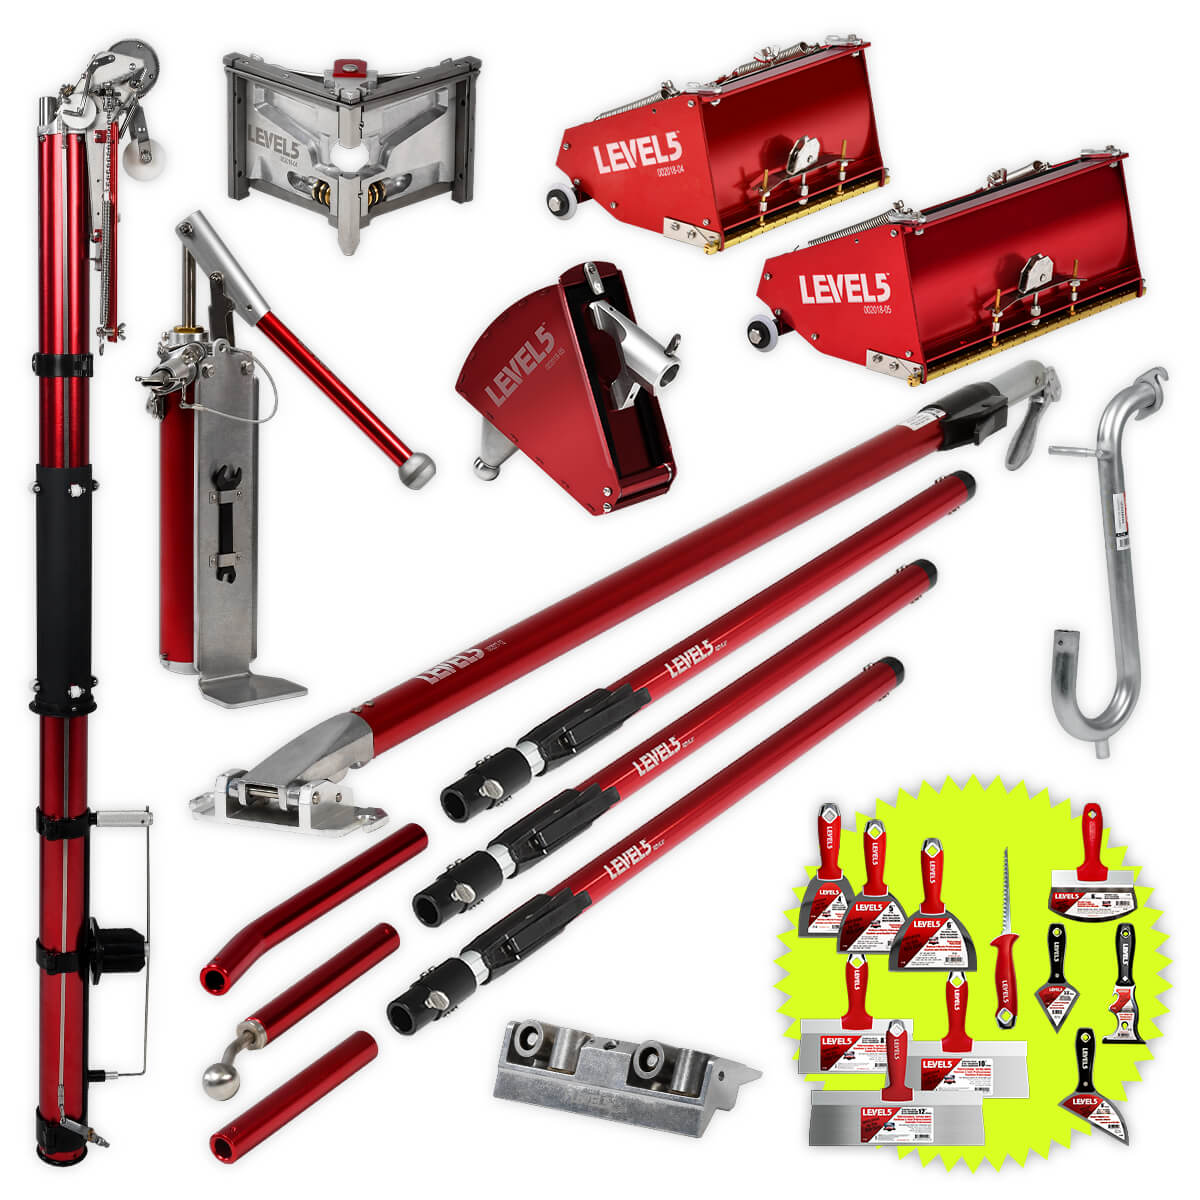 Drywall Taping Tool Set w/ 7/10-Inch MEGA Boxes & Ext. Handles | 4-611